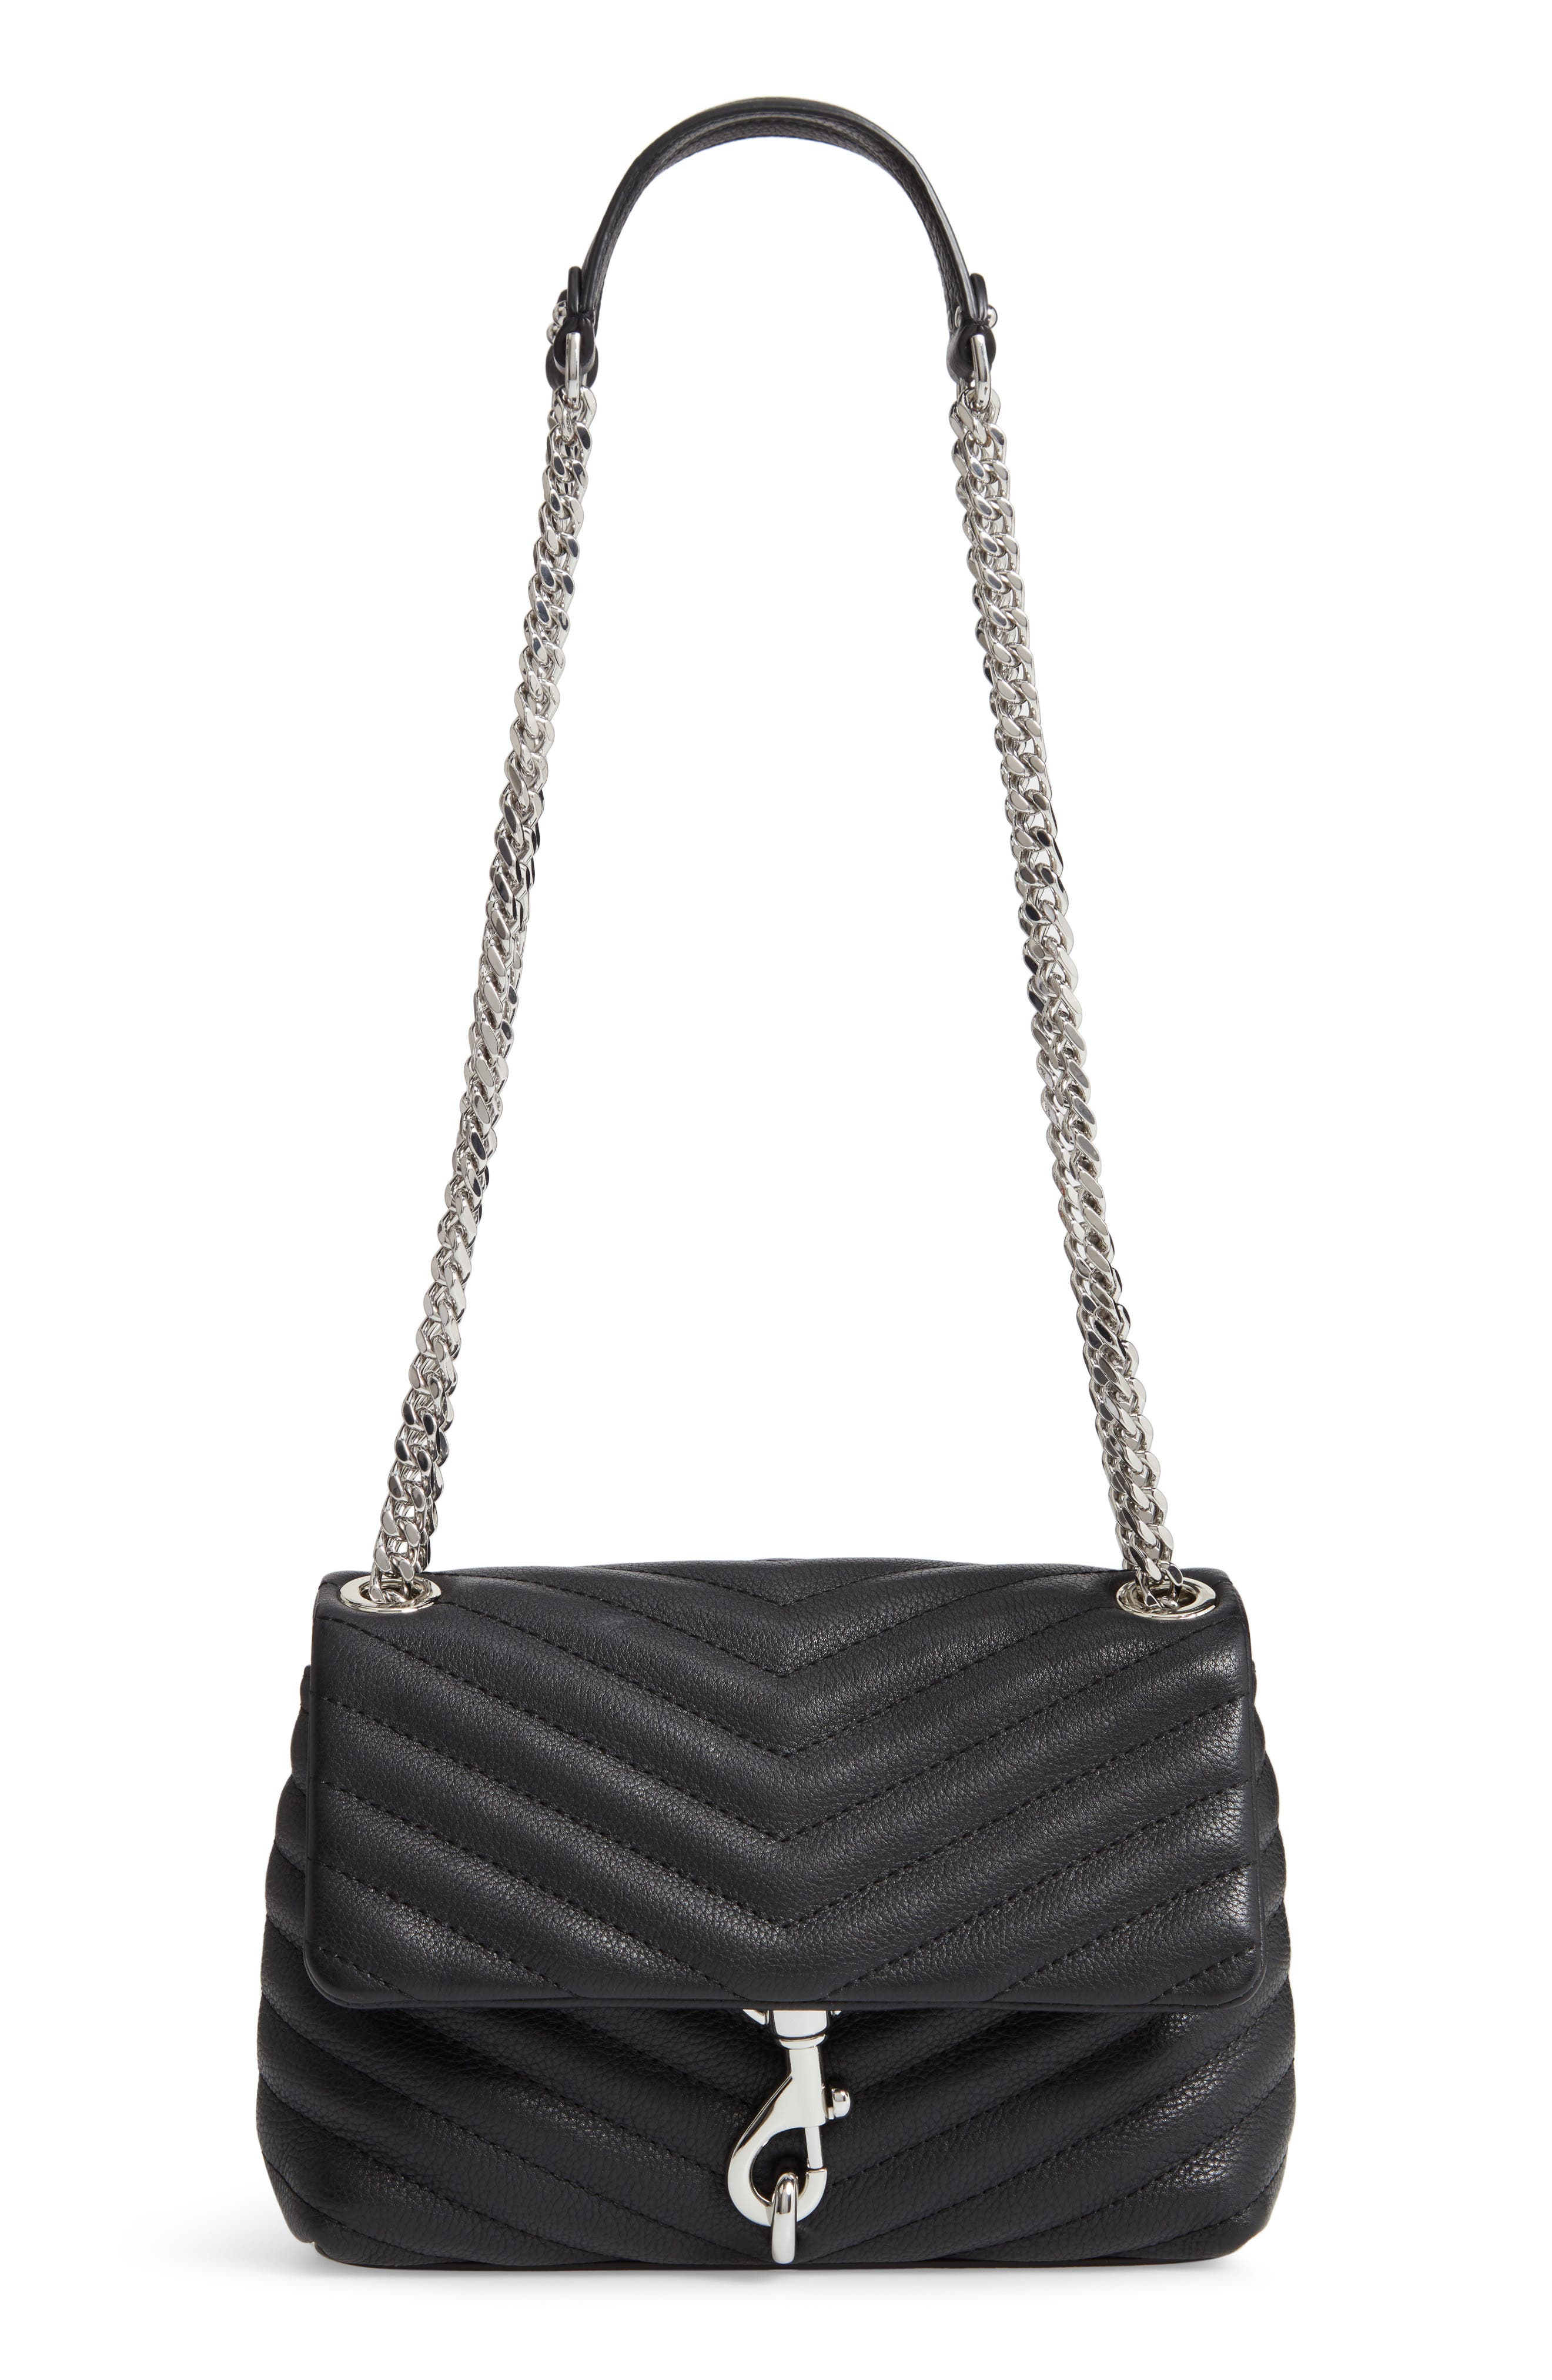 REBECCA MINKOFF, Edie Quilted Leather Crossbody Bag, Main thumbnail 1, color, BLACK